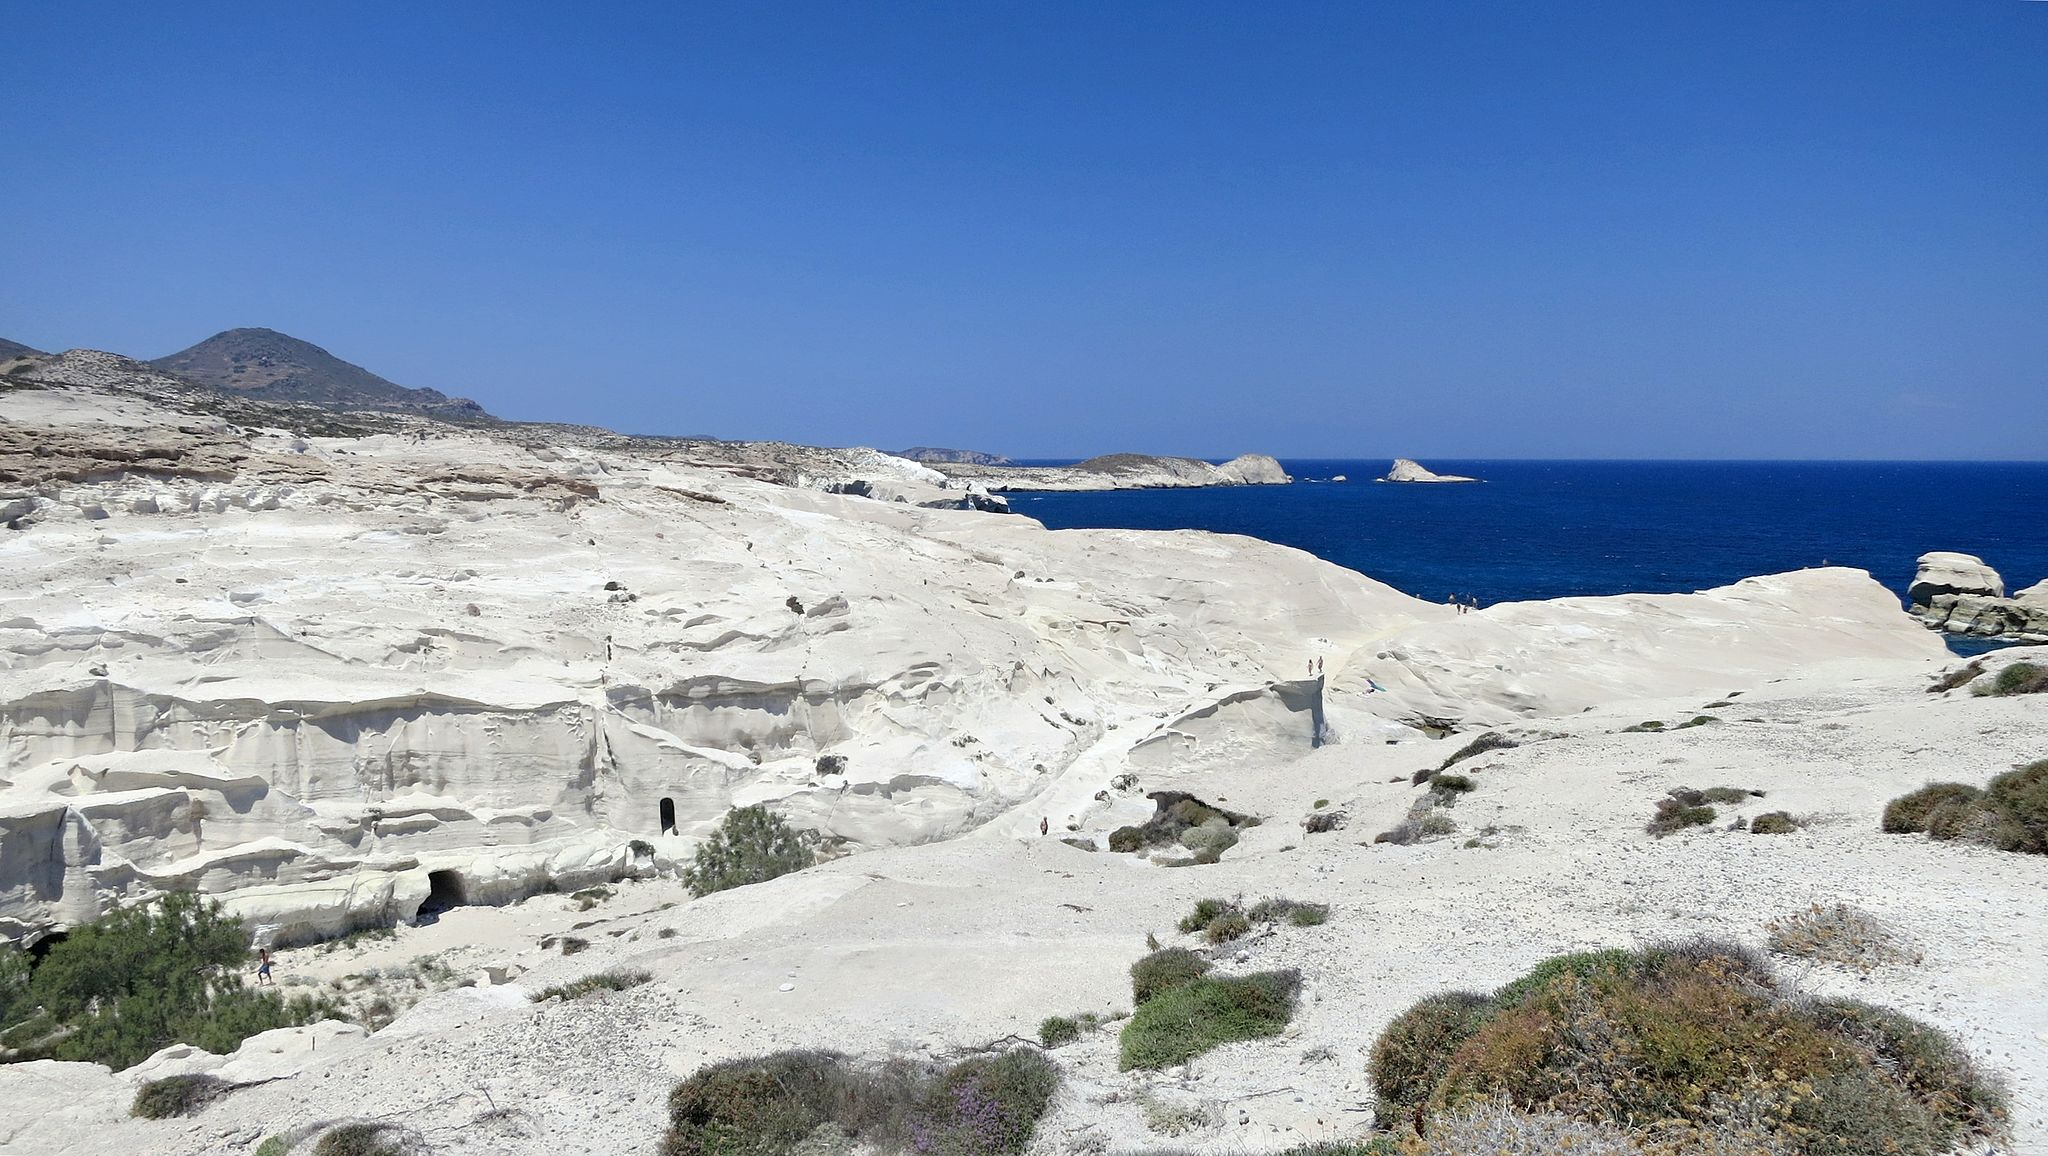 Sarakiniko - Greece